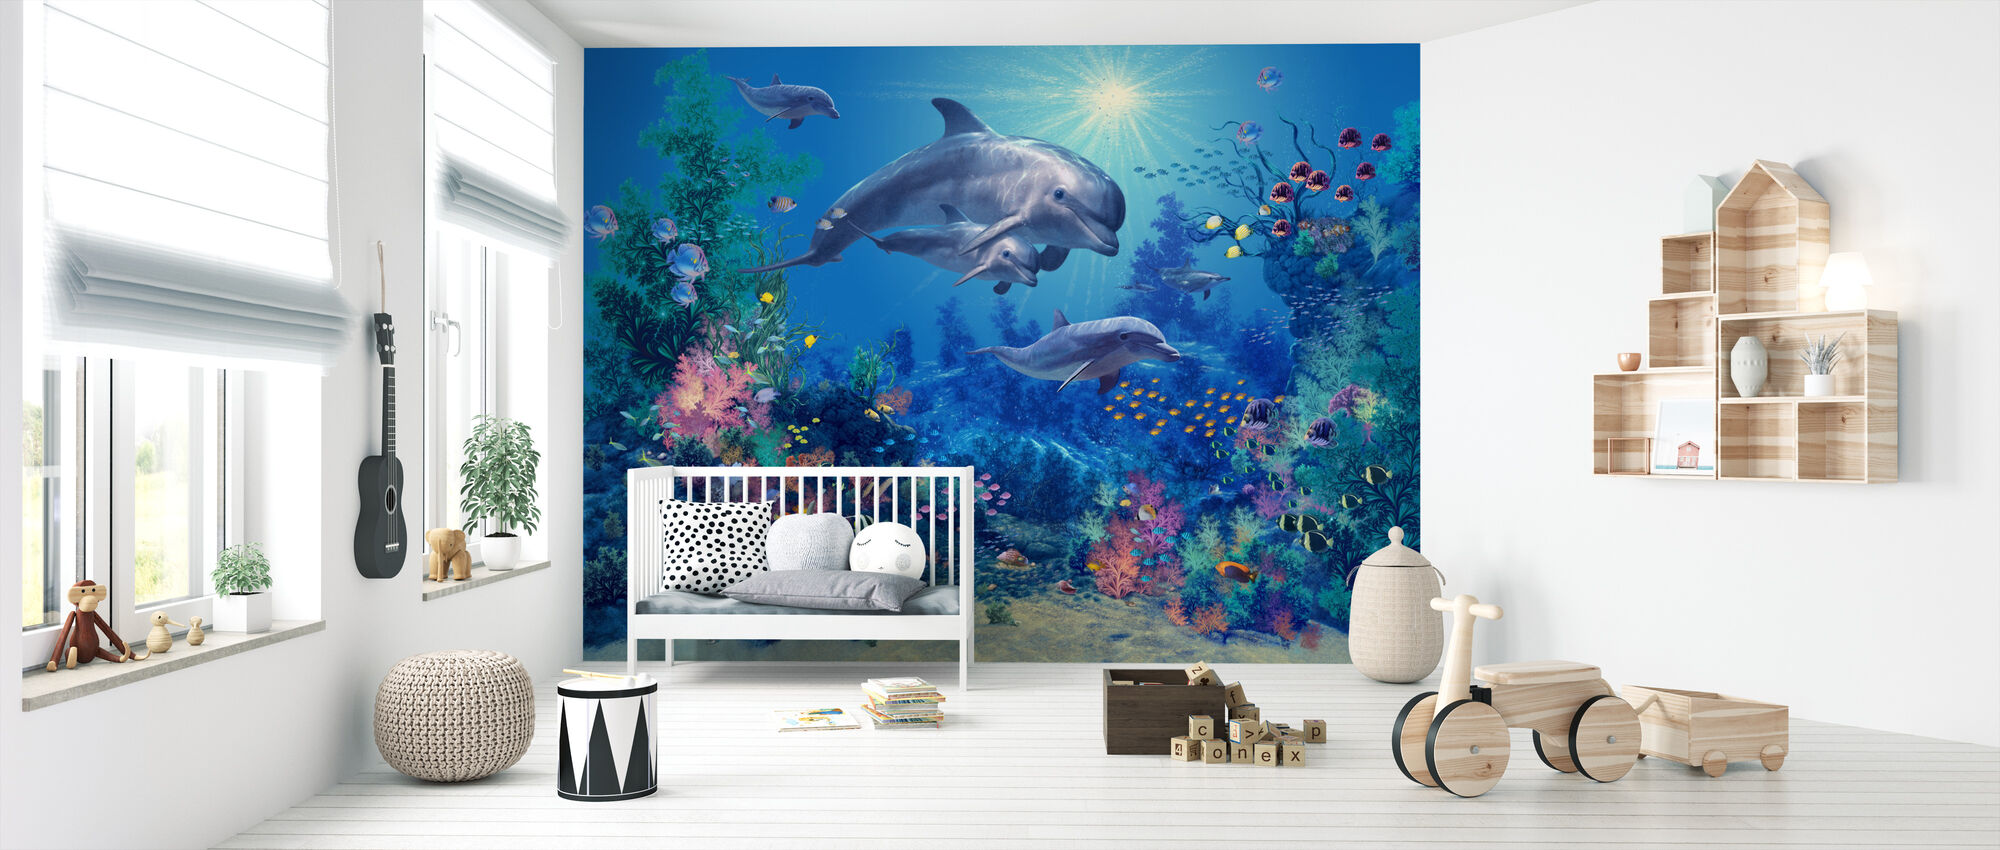 The Family - Wallpaper - Nursery